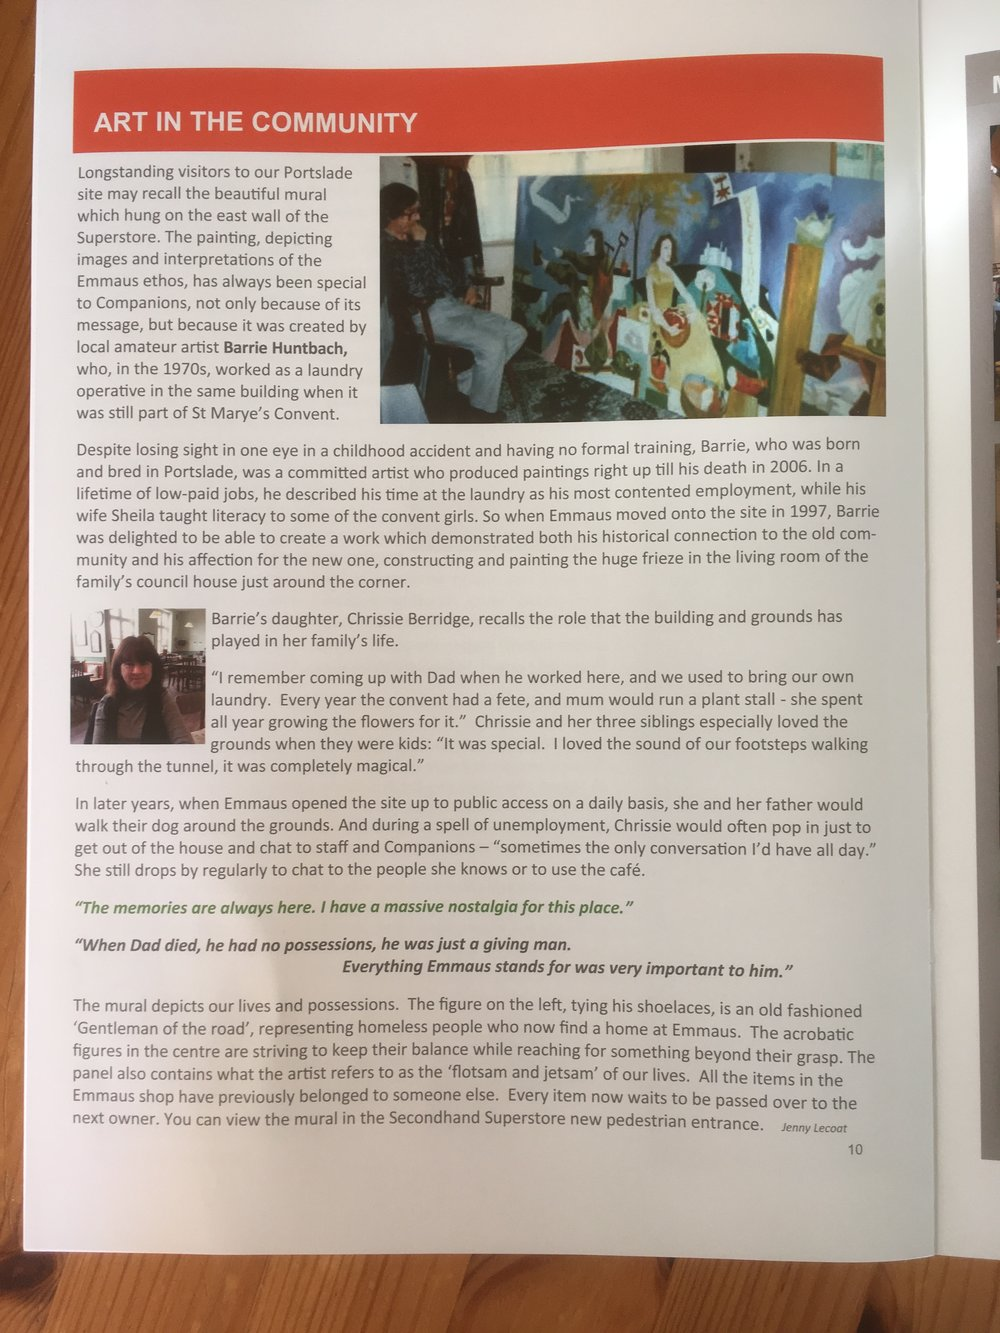 My interview in the Emmaus talking about my father's mural